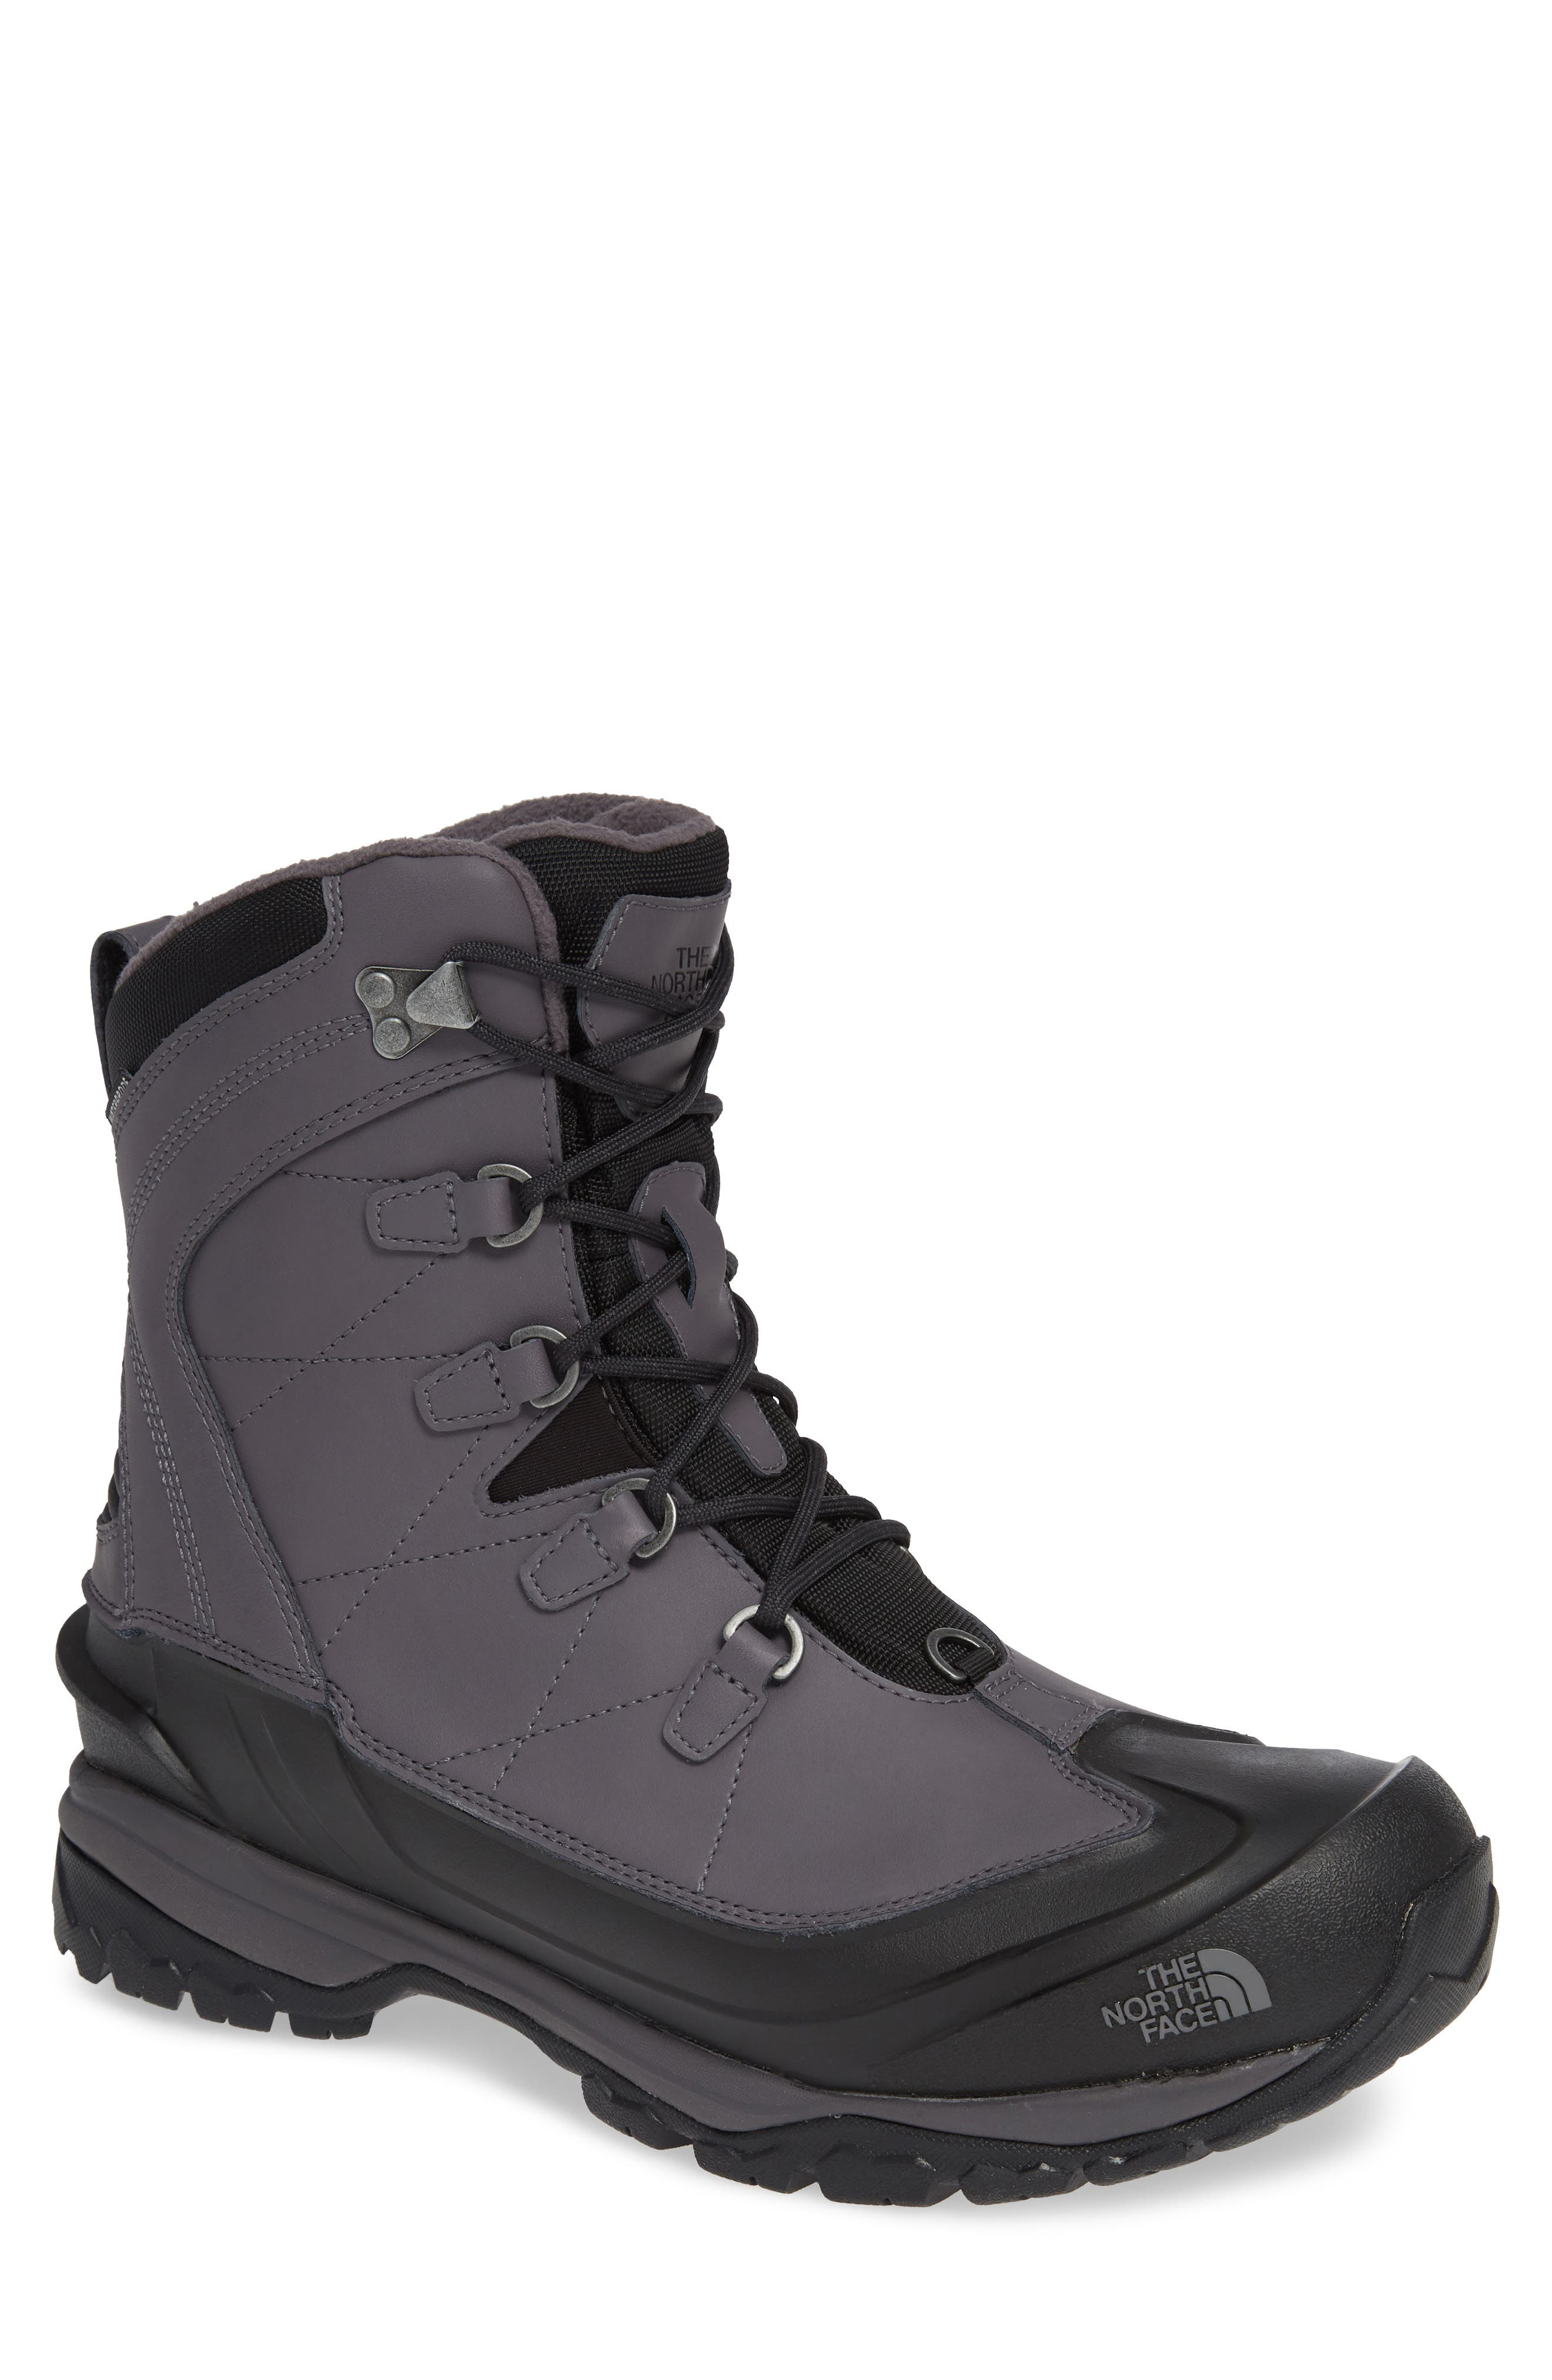 The North Face Chilkat Evo Waterproof Insulated Snow Boot- Grey